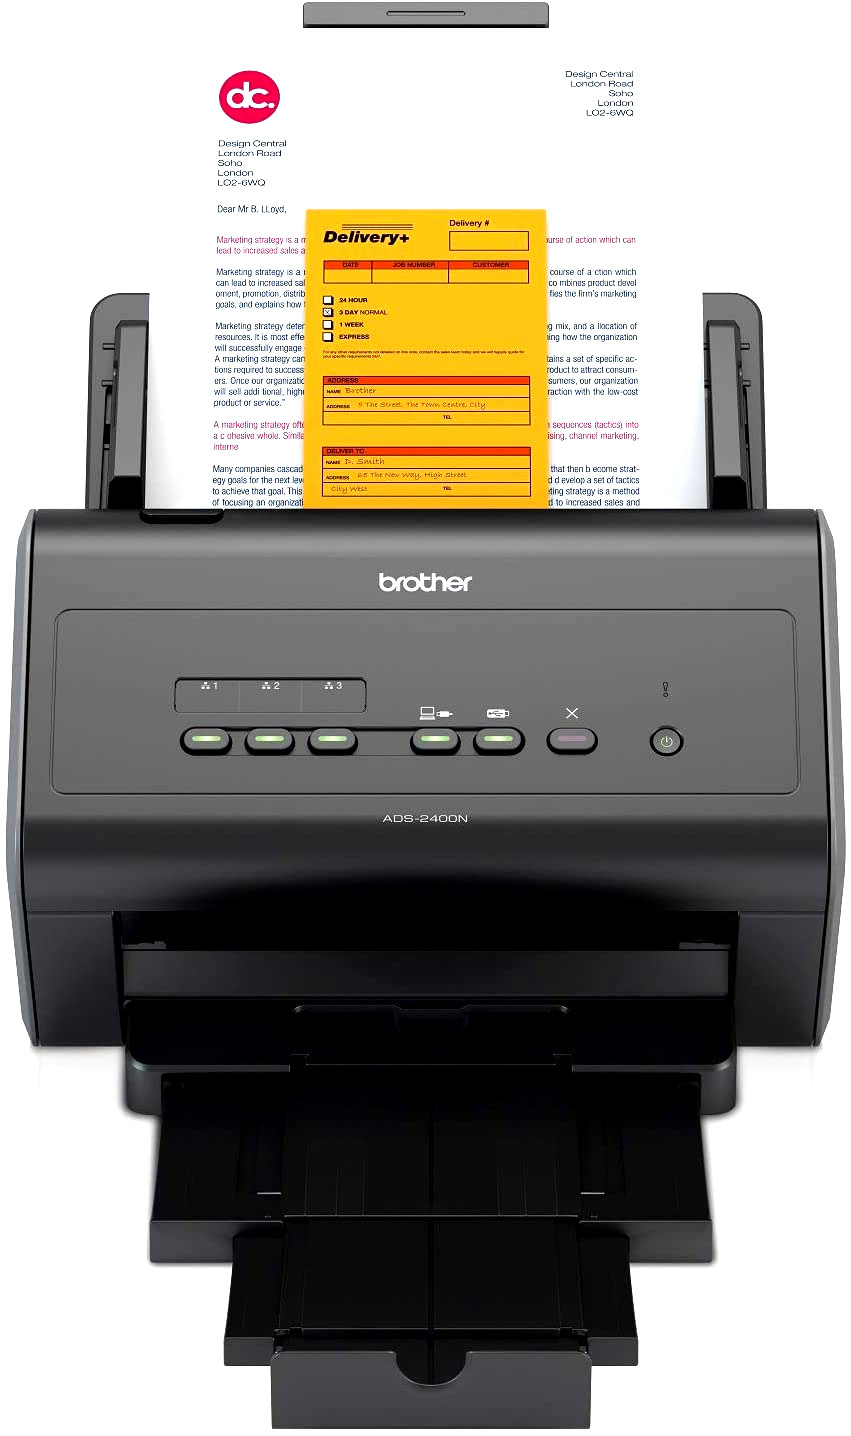 Brother ADS 2400N Document Scanner Scheduled Maintenance Error – Wartungs Fehler – scanner beeps every time I scan – scanner piept nach jedem scan